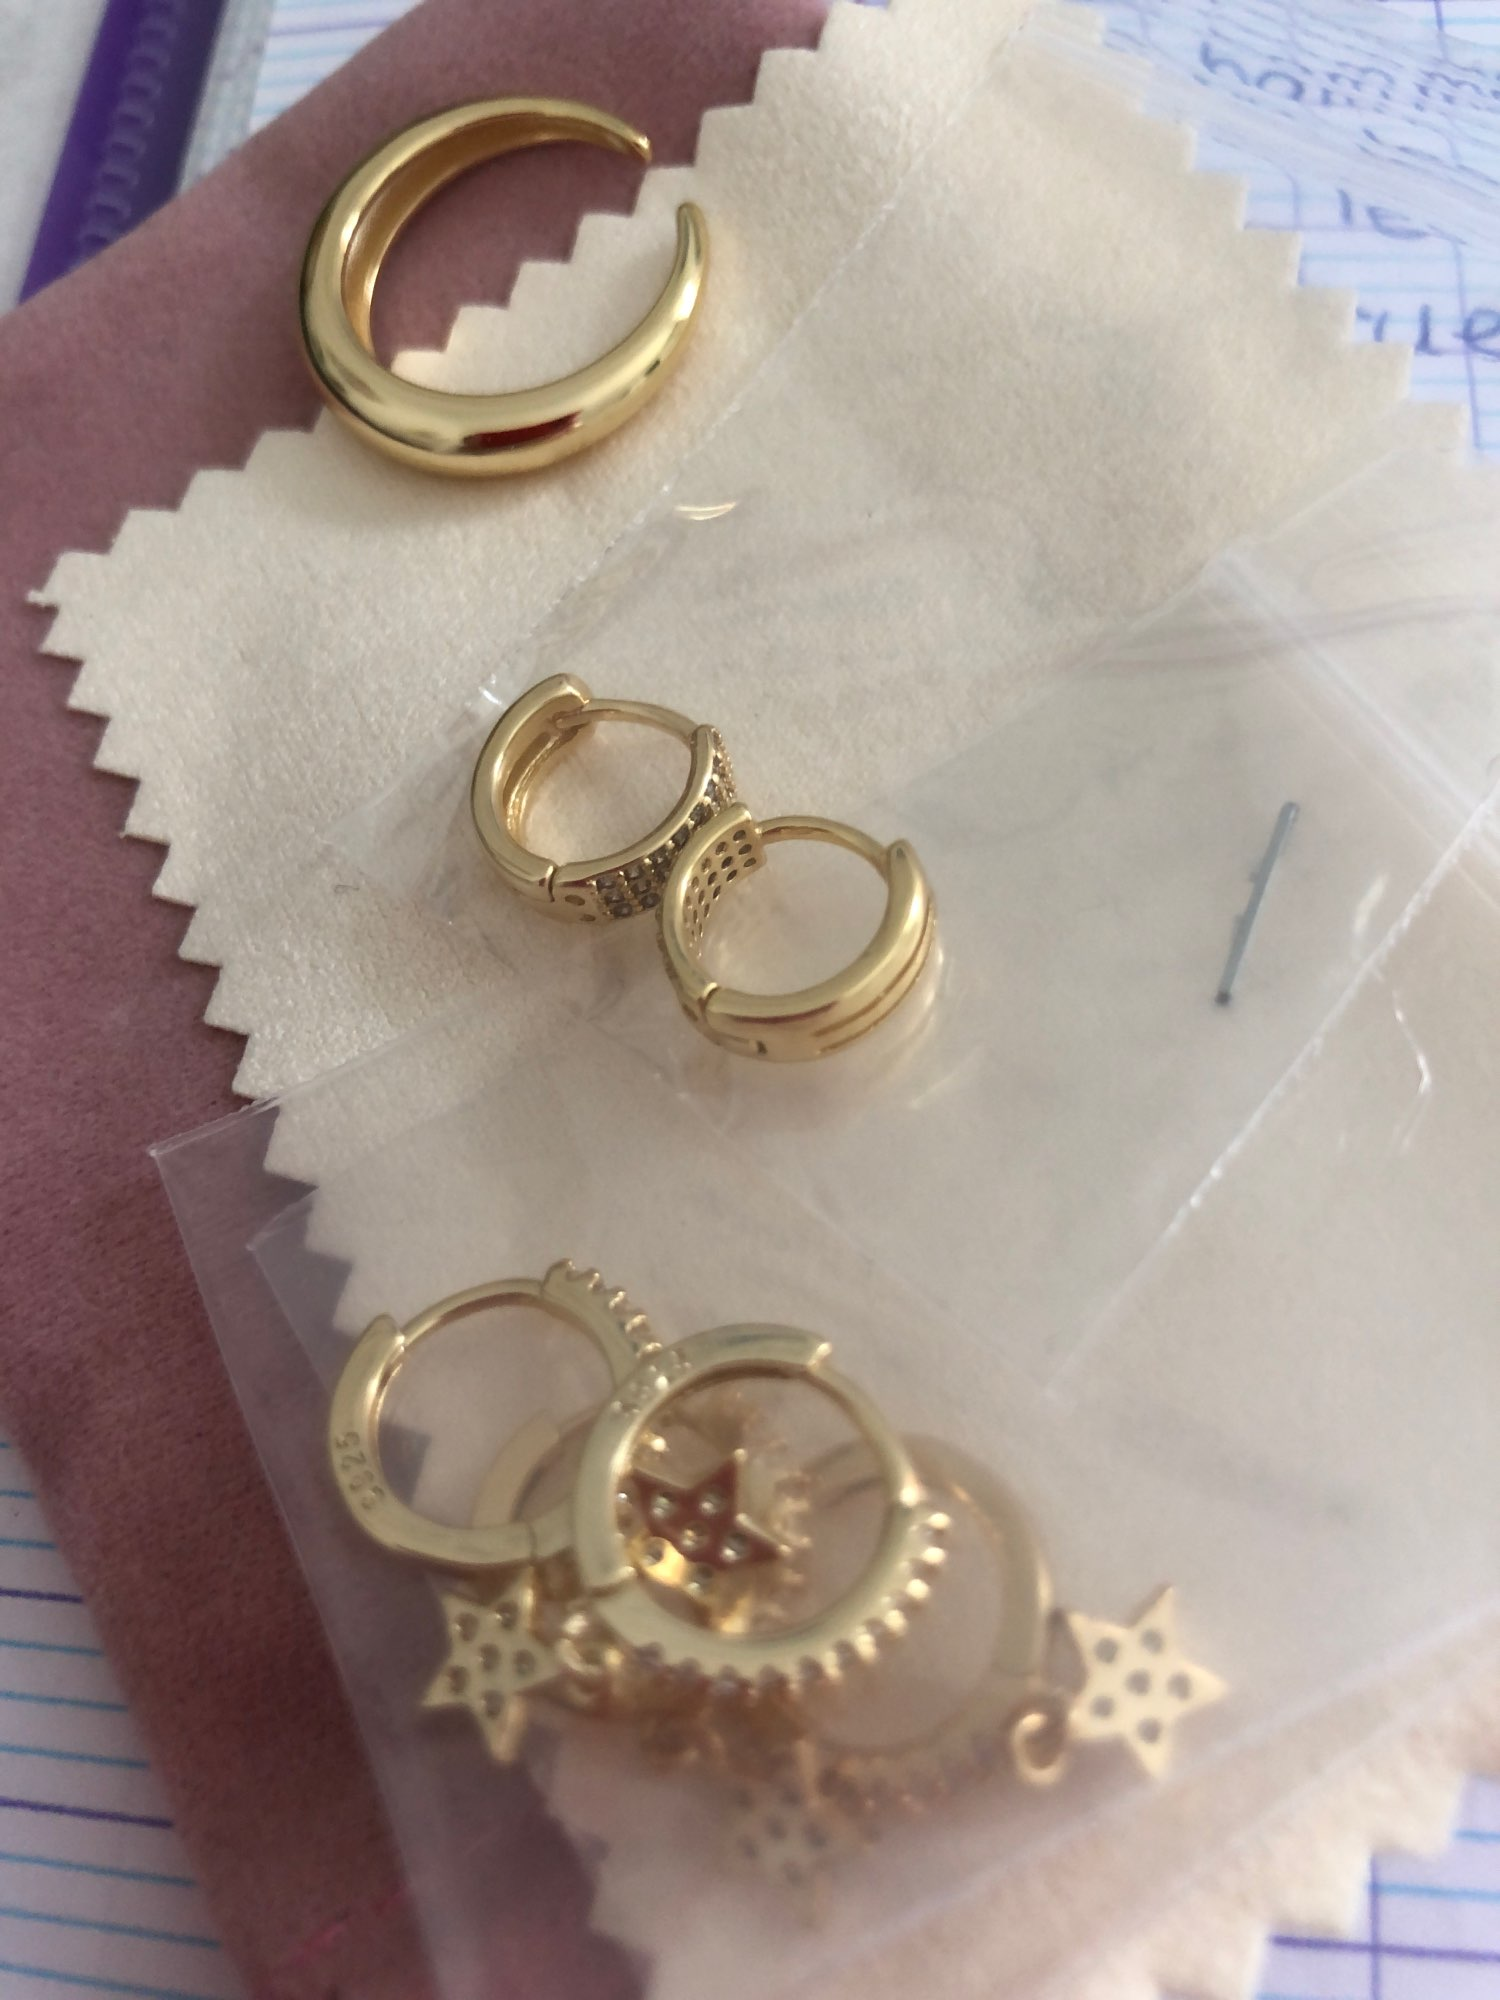 ANENJERY 925 Sterling Silver French Punk Hip-Hop Geometric Small Hoop Earrings for Women Gold Silver Party Jewelry Accessories photo review